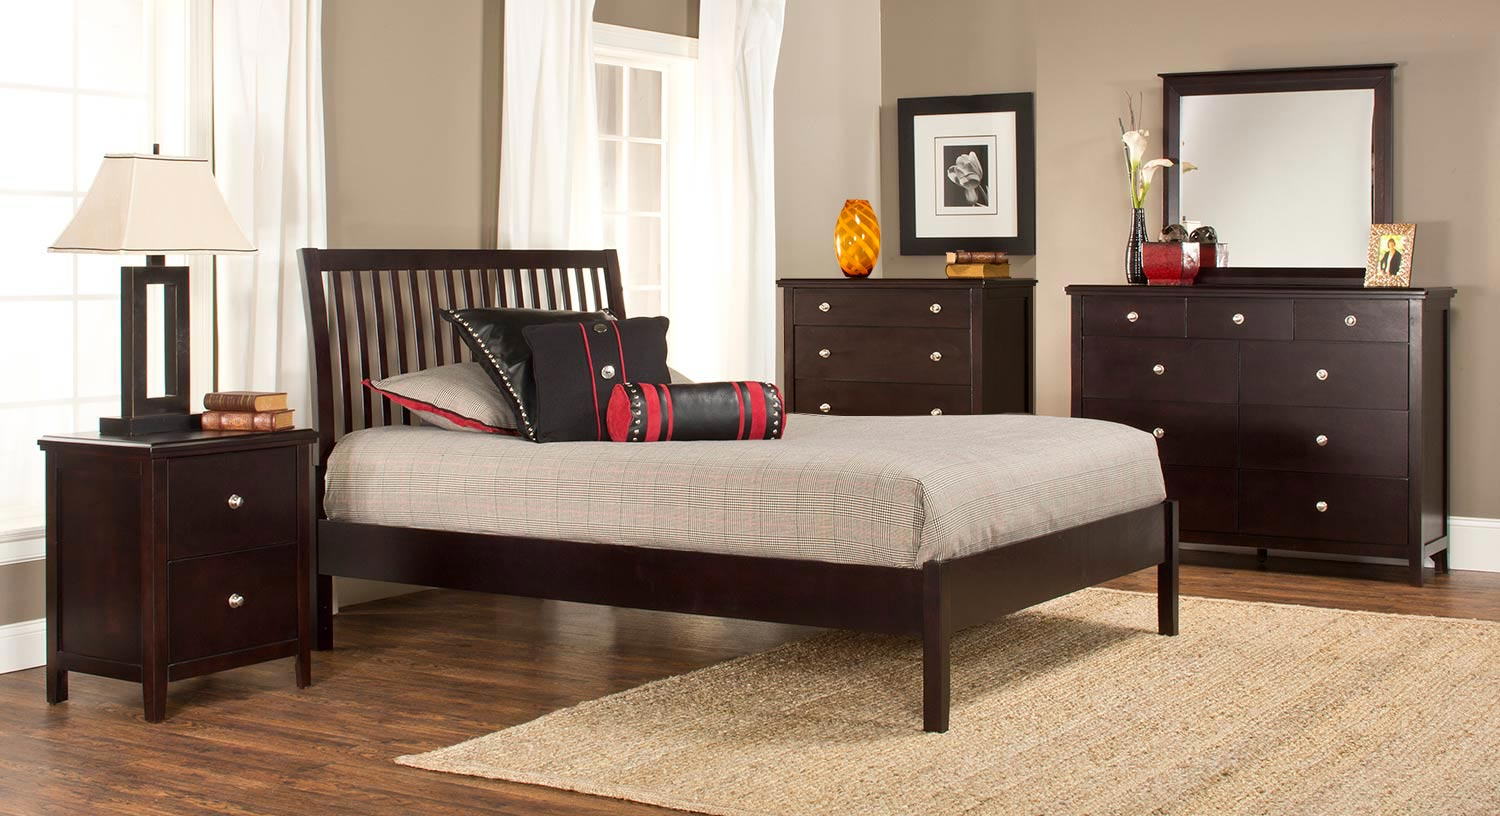 Hillsdale Metro Liza Platform 5-Piece Bedroom Collection - Dark Espresso